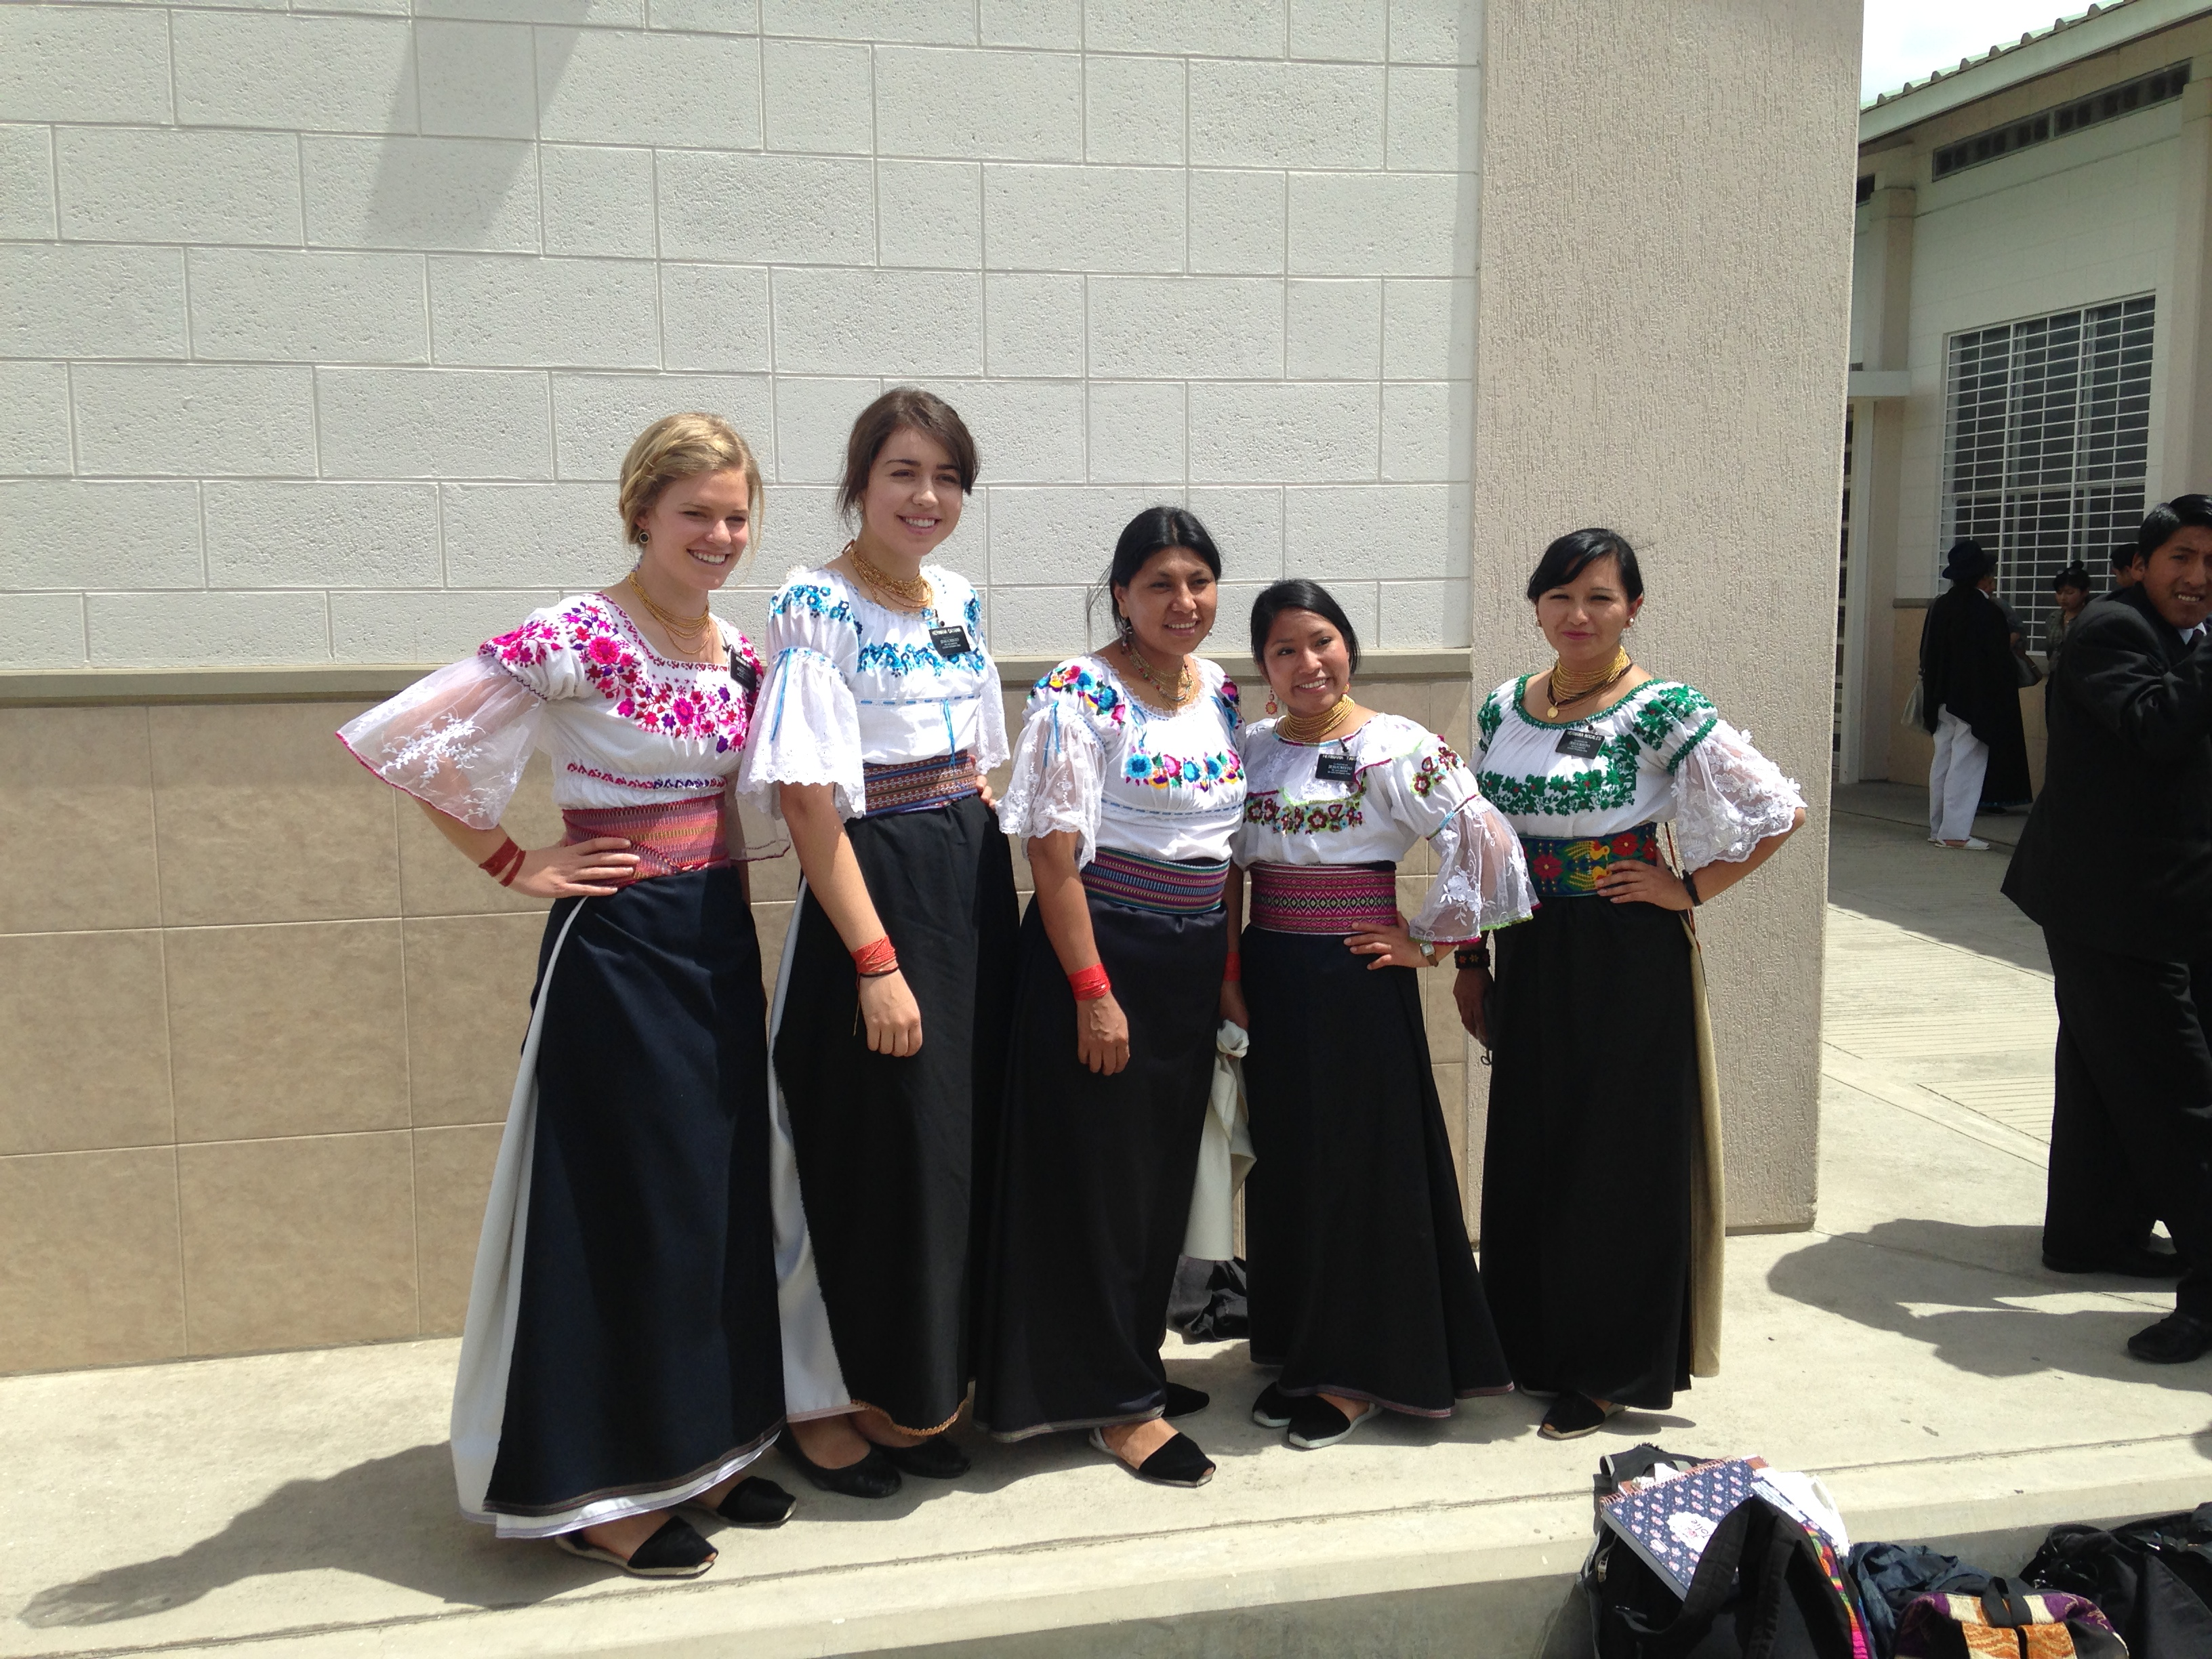 Otavalo Ecuador And The Changing Demographics Of The LDS